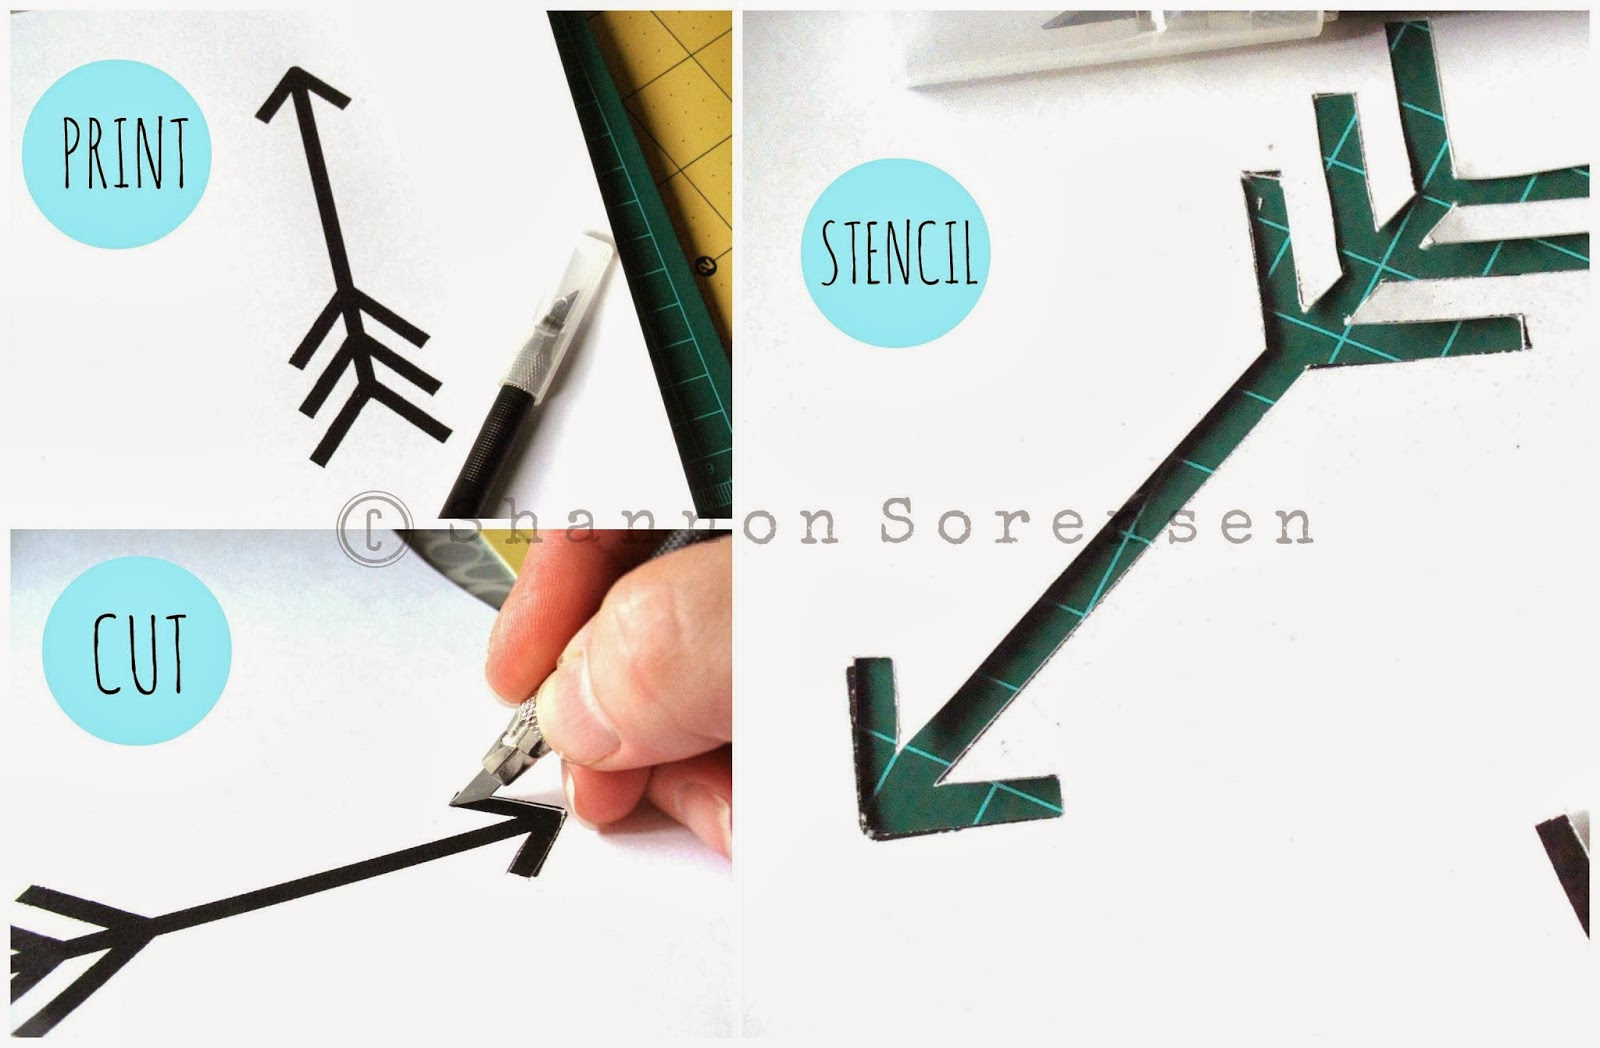 Sewing tutorials crafts diy handmade shannon sews blog for how to create a stencil for arrow t shirt design amipublicfo Images